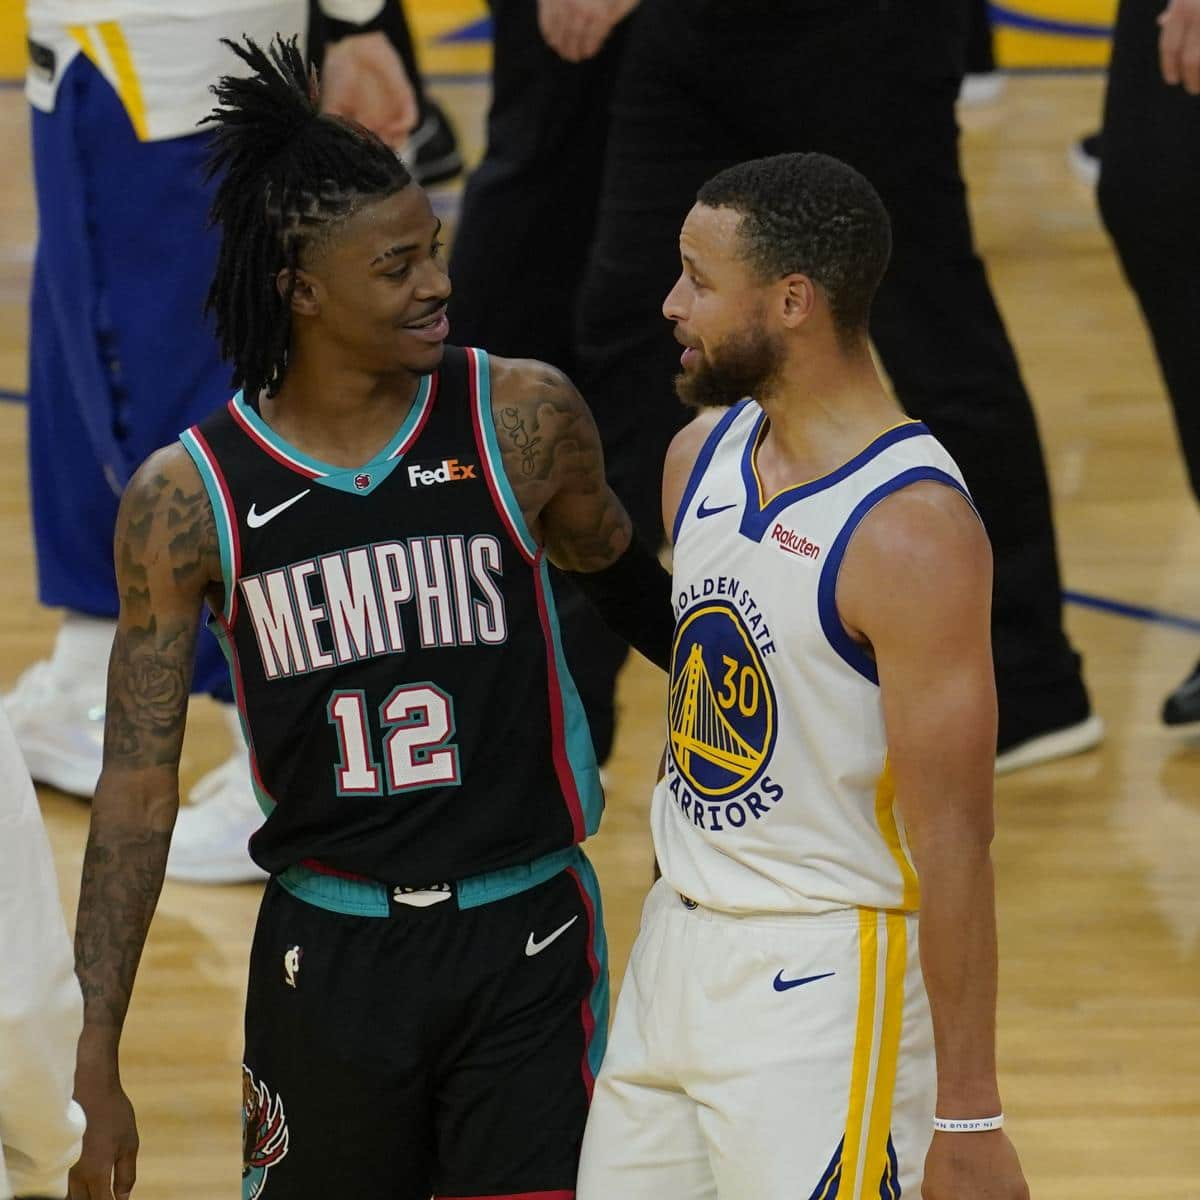 warriors-total-information-to-play-in-game-vs-grizzlies.jpg